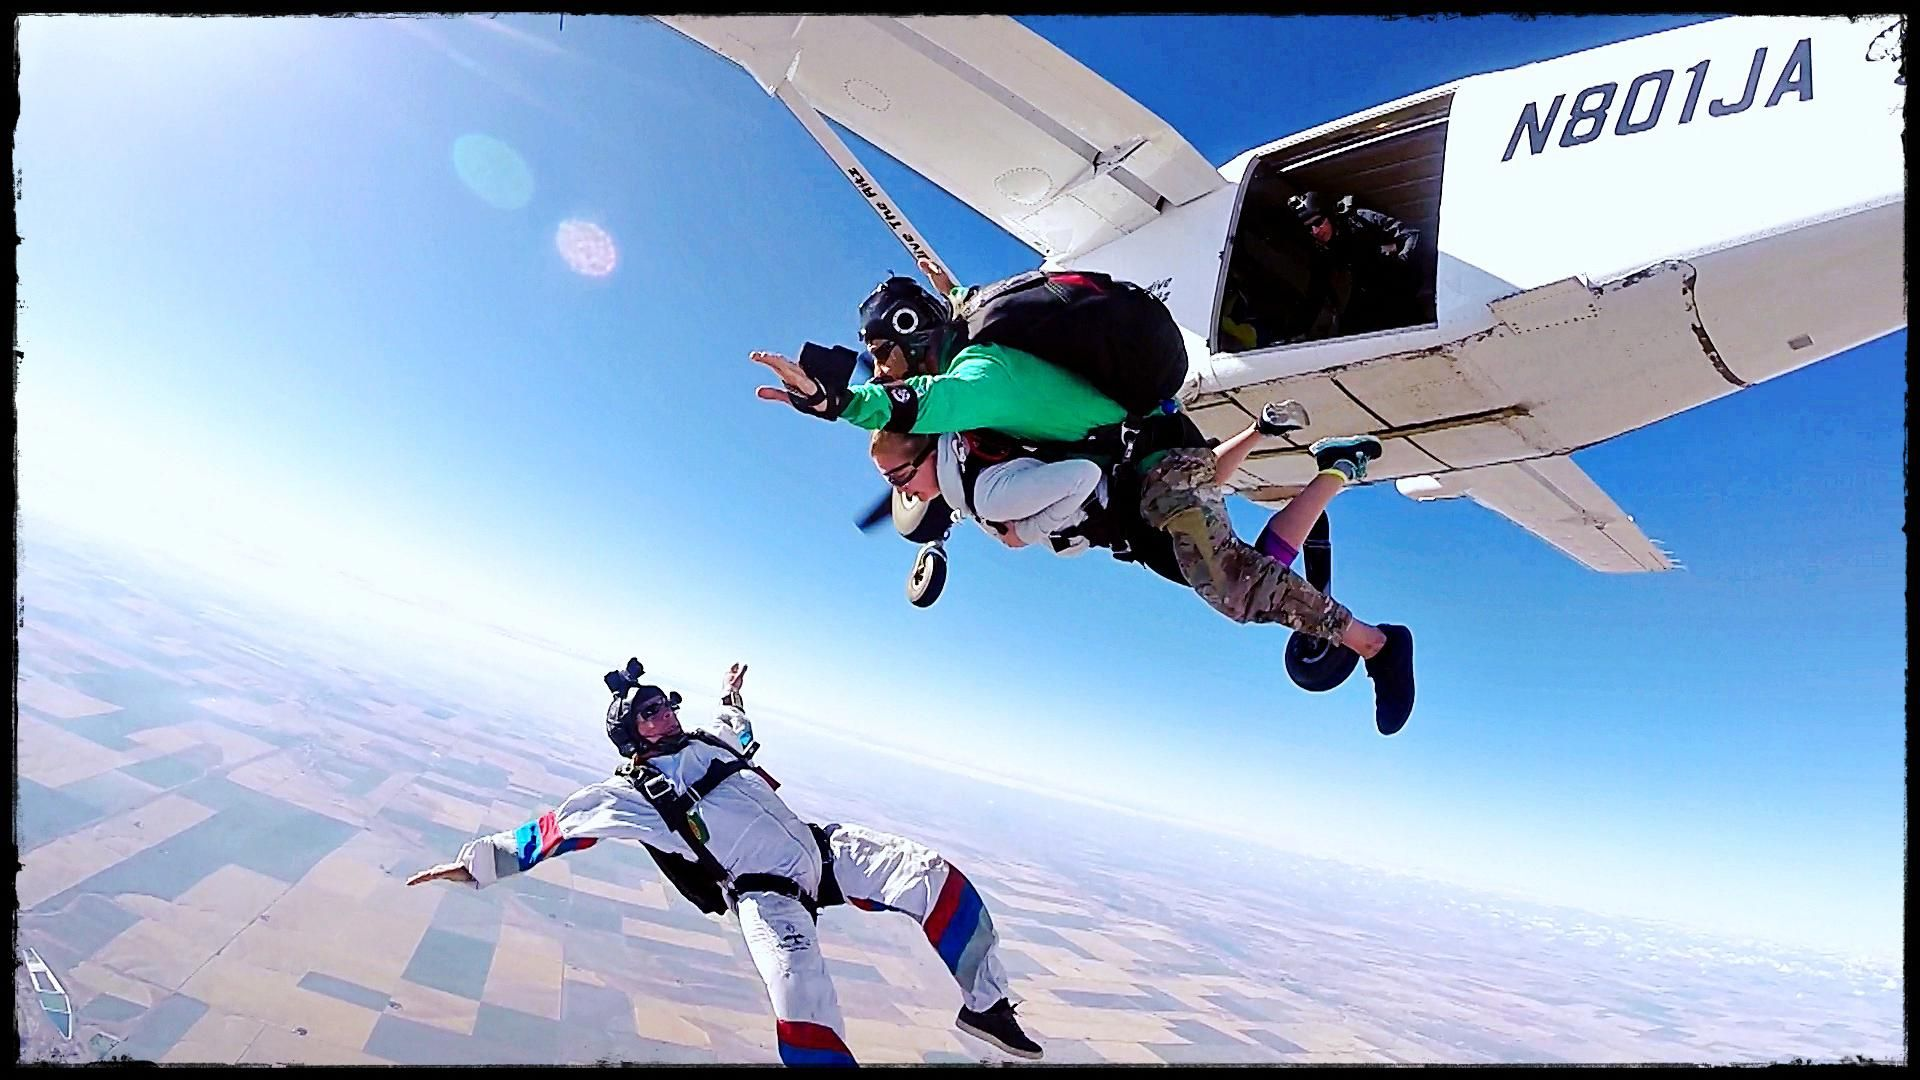 The Feeling Of Tandem Skydiving Skydiving Skydiving License Paragliding